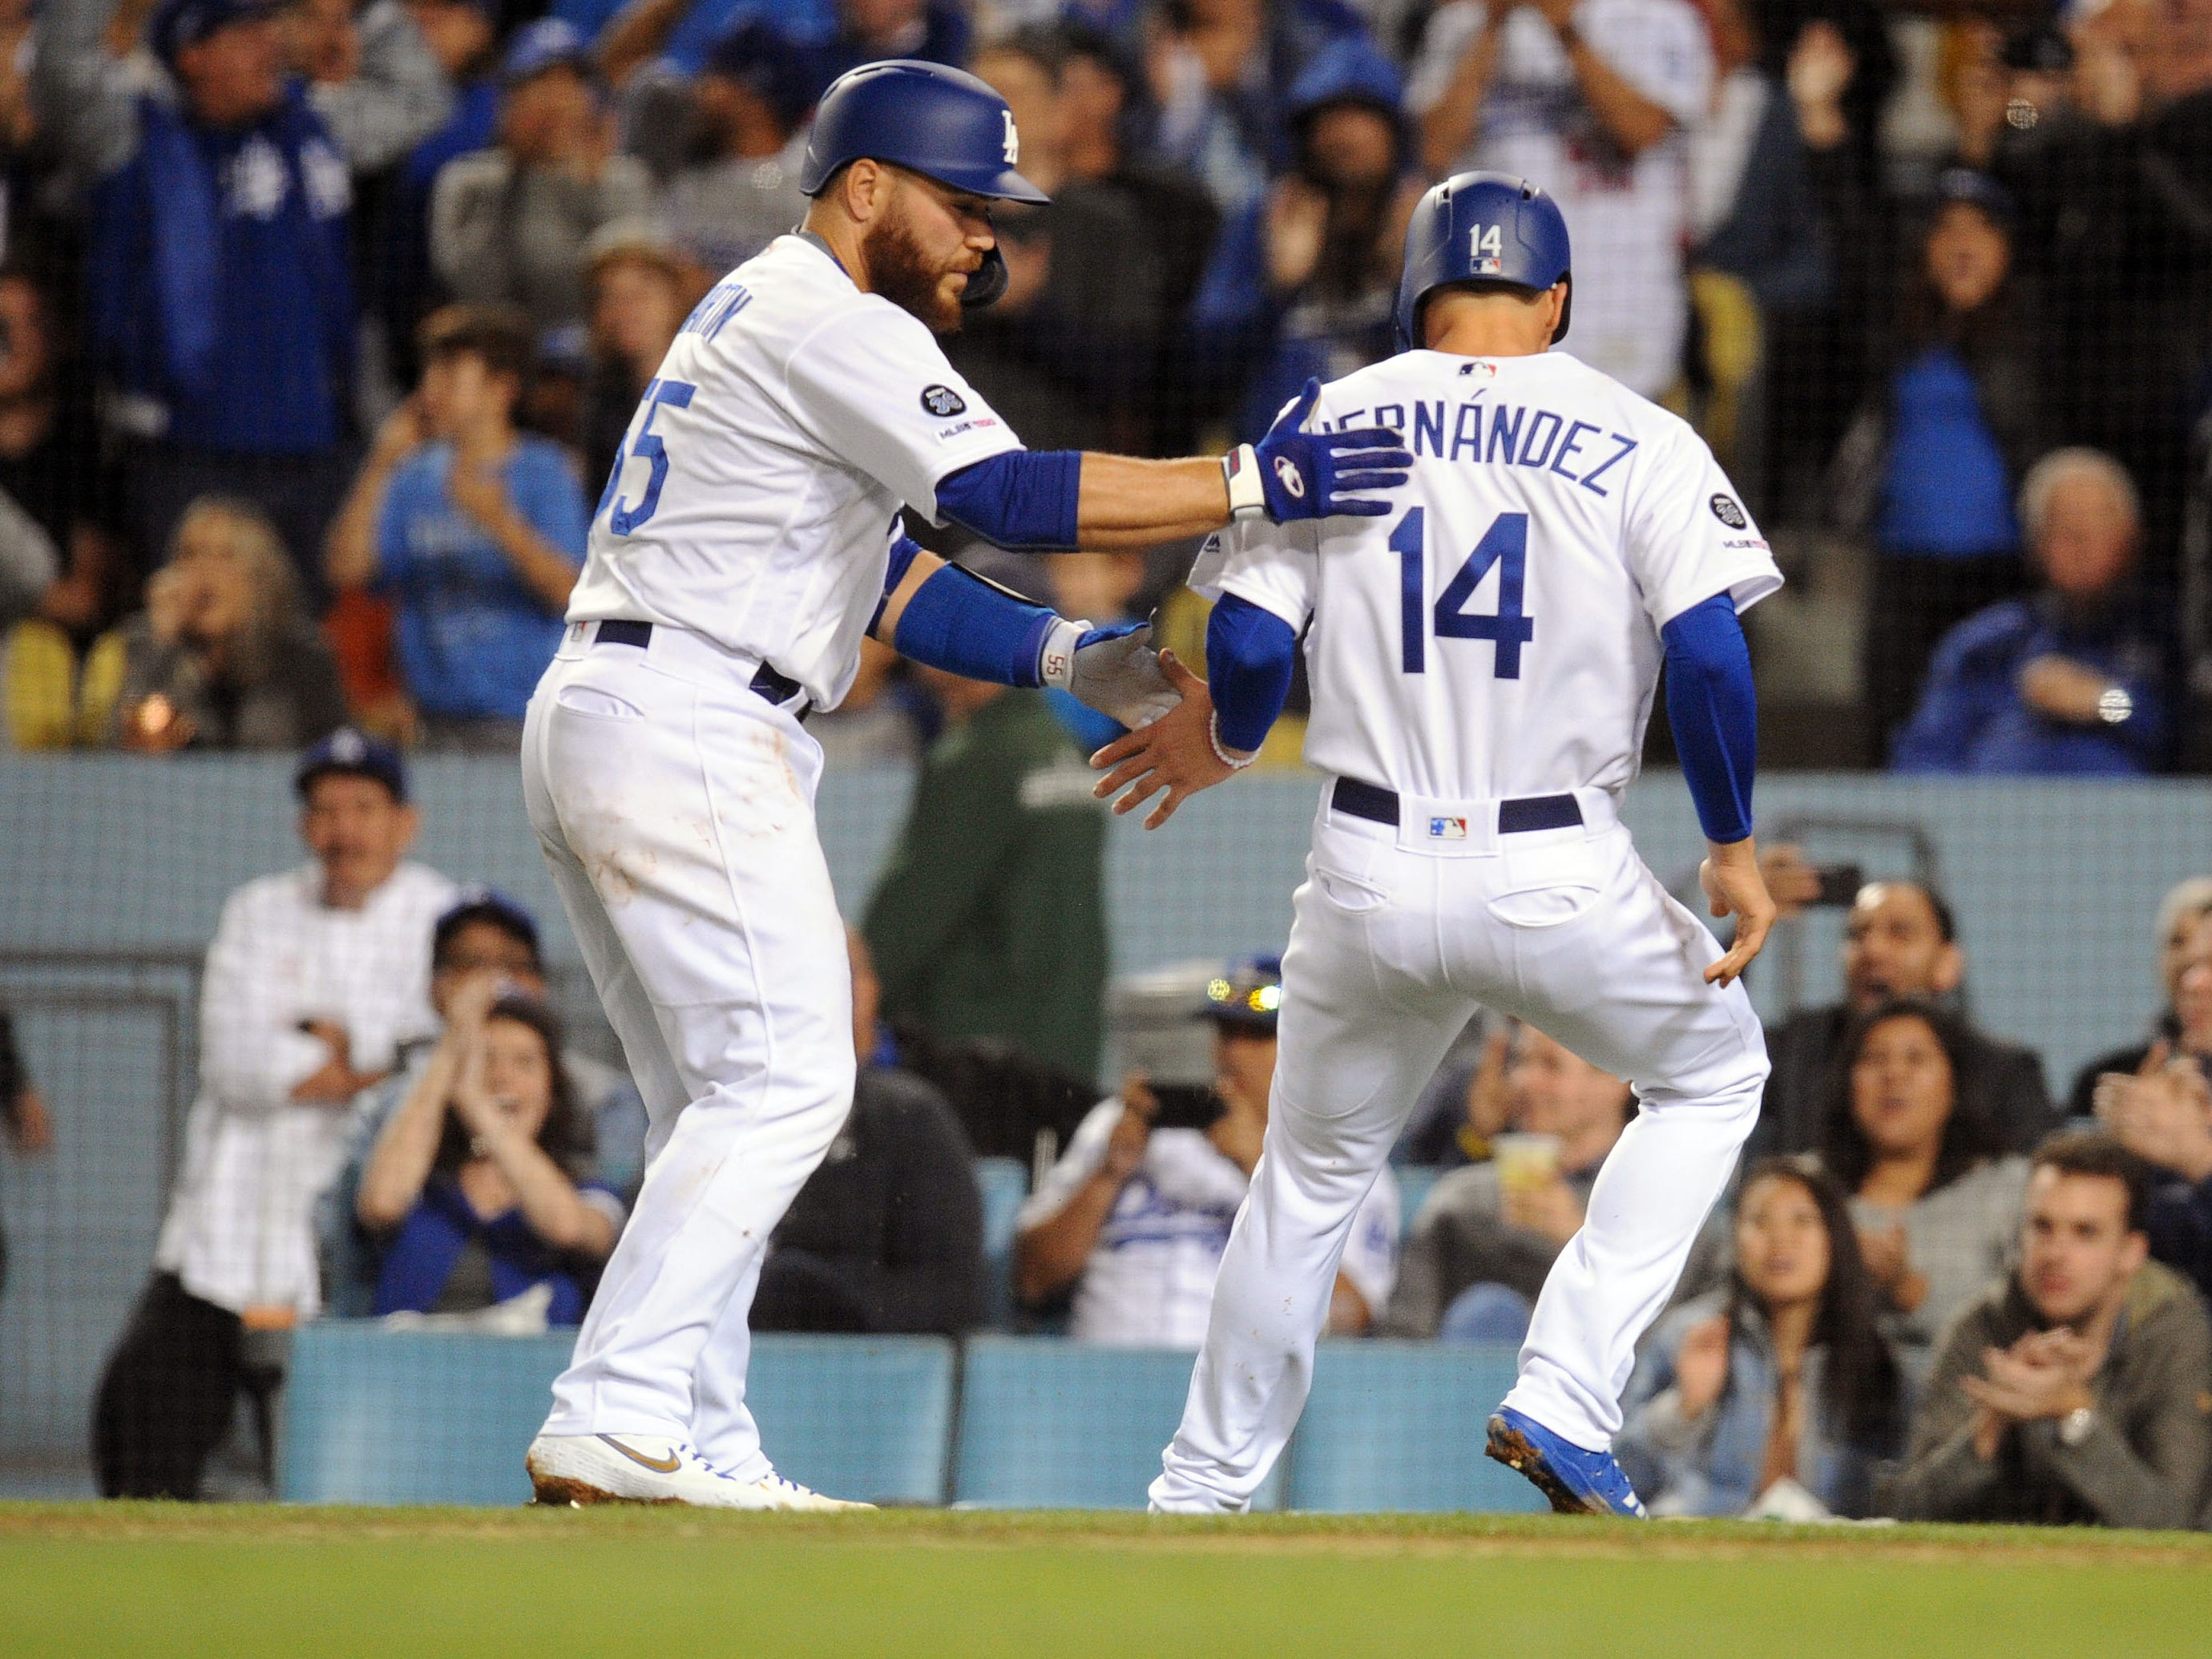 March 29, 2019; Los Angeles, CA, USA; Los Angeles Dodgers catcher Russell Martin (55) greets center fielder Enrique Hernandez (14) after both scoring runs against the Arizona Diamondbacks during the third inning at Dodger Stadium.